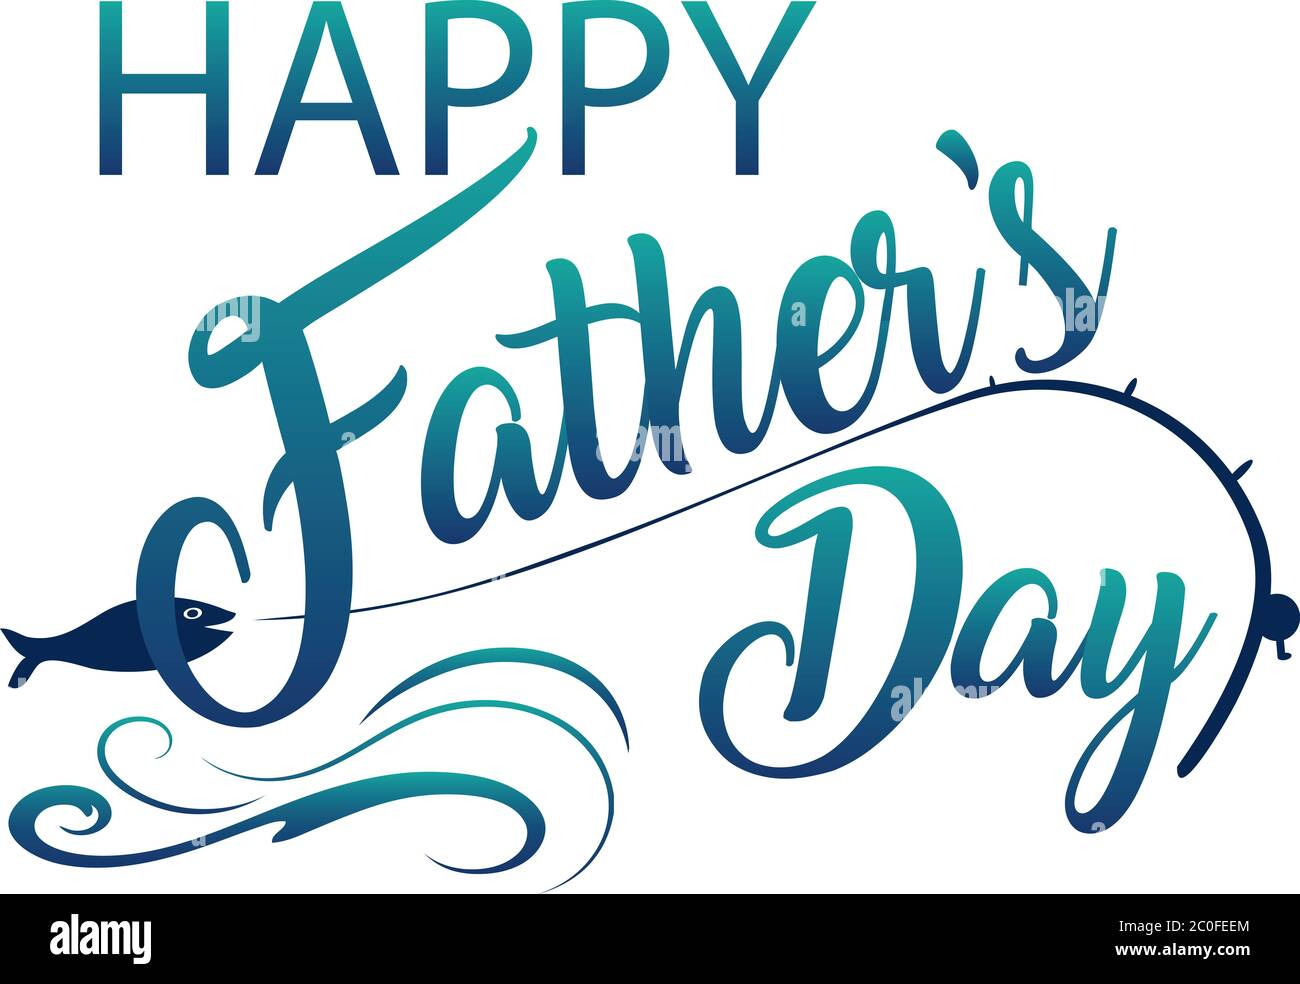 Happy Father S Day Fishing Graphic Stock Photo Alamy